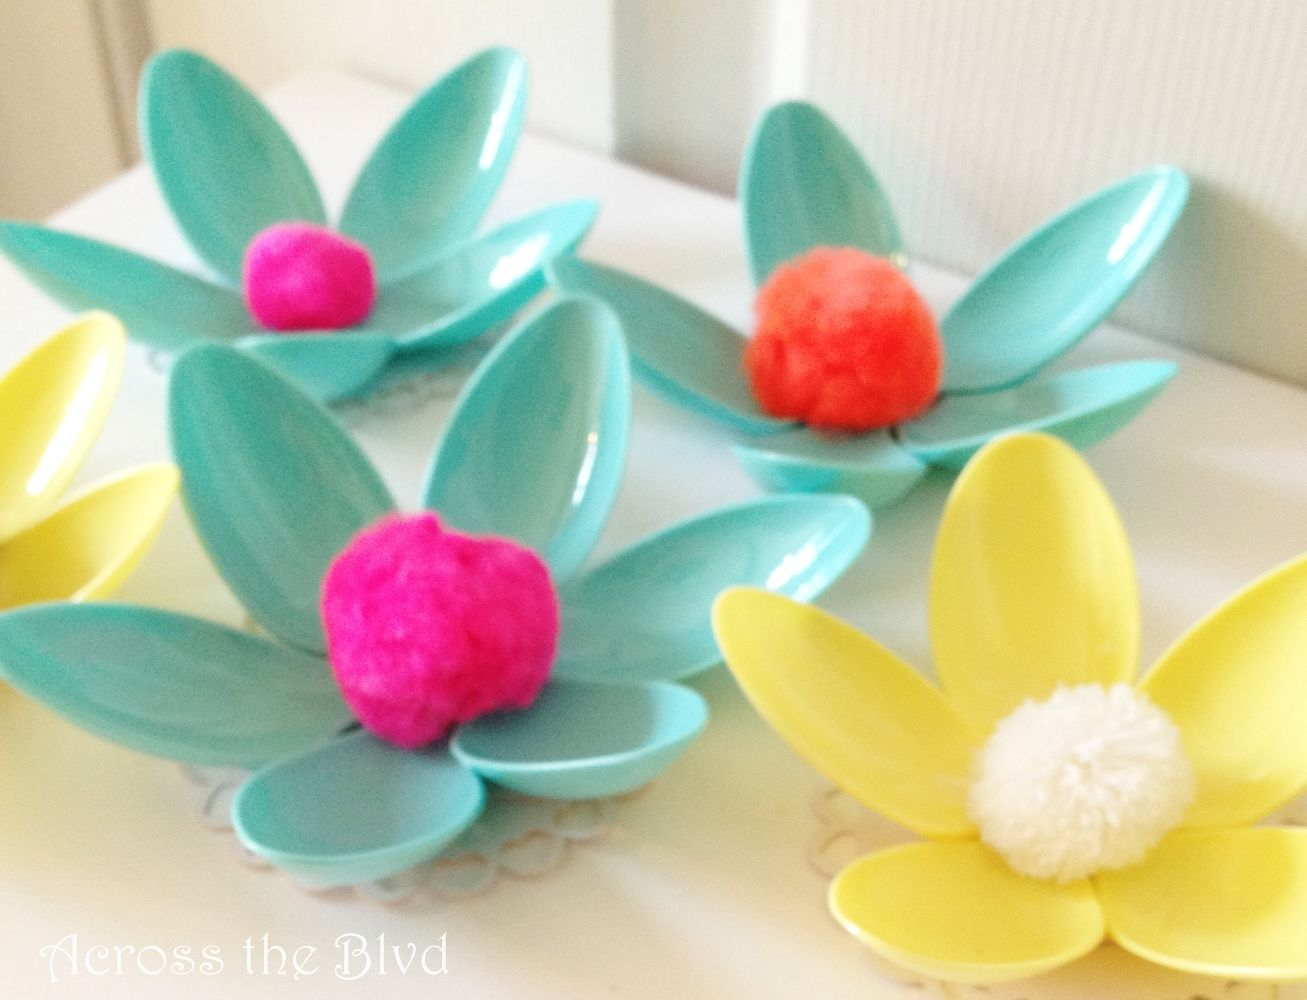 No Way These Pops Of Color Were Made With Dollar Store